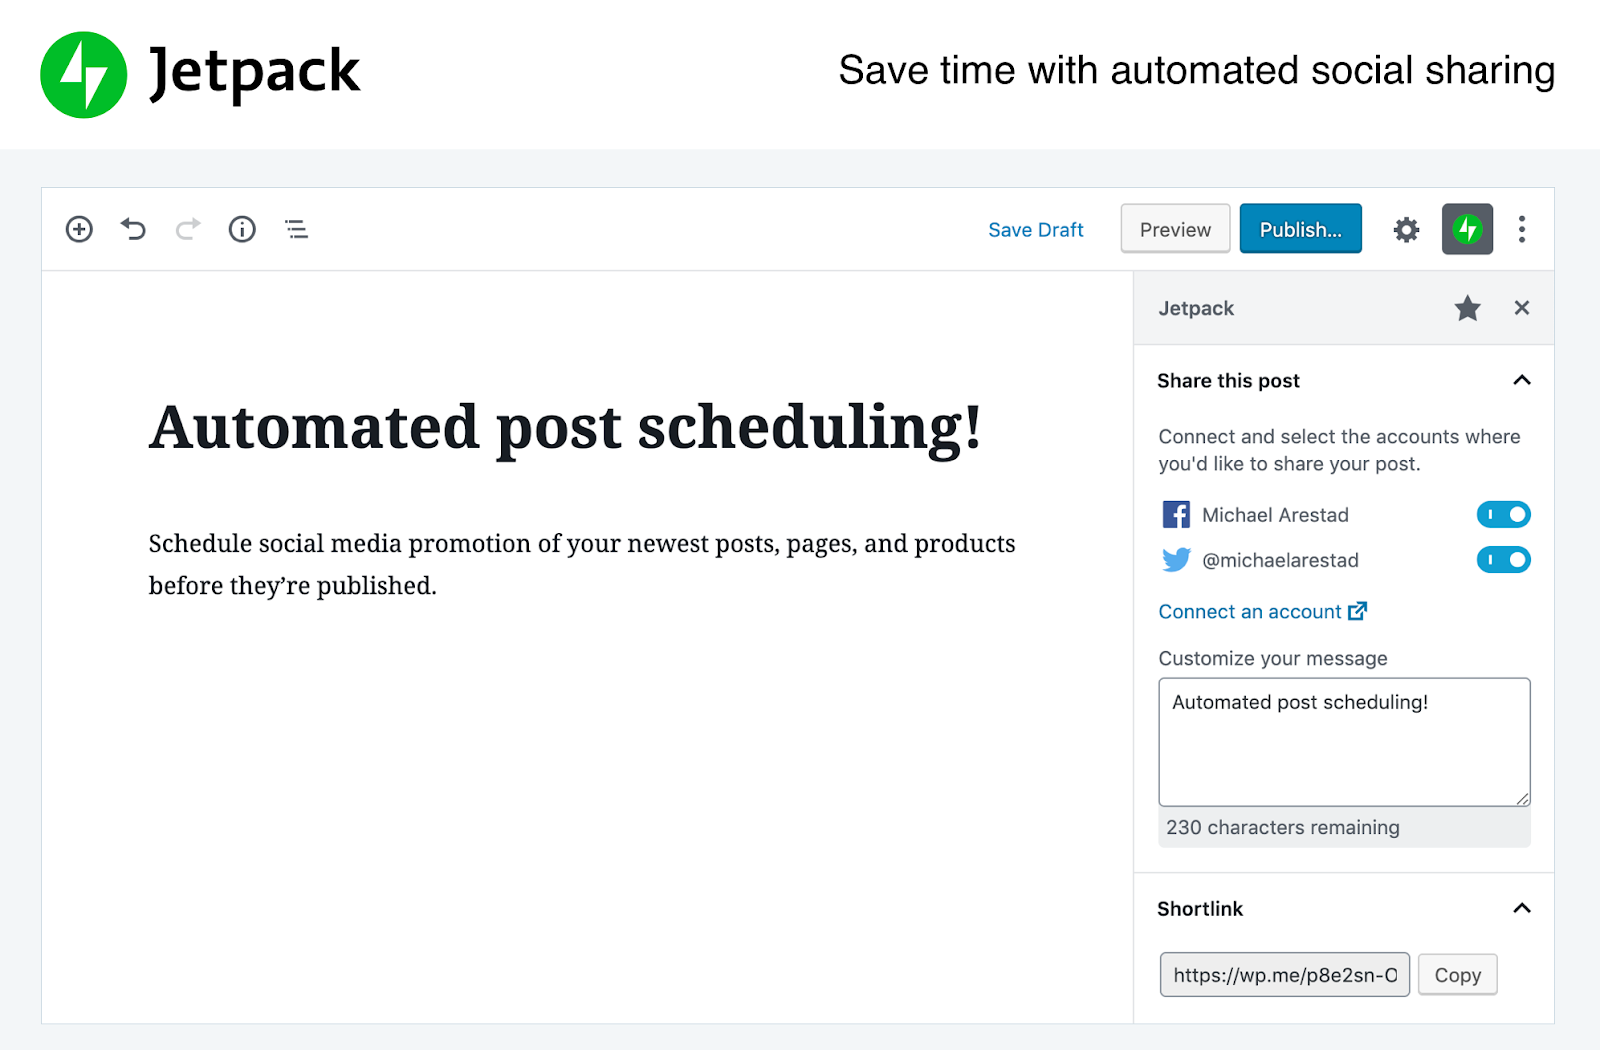 jetpack WordPress social media plugins